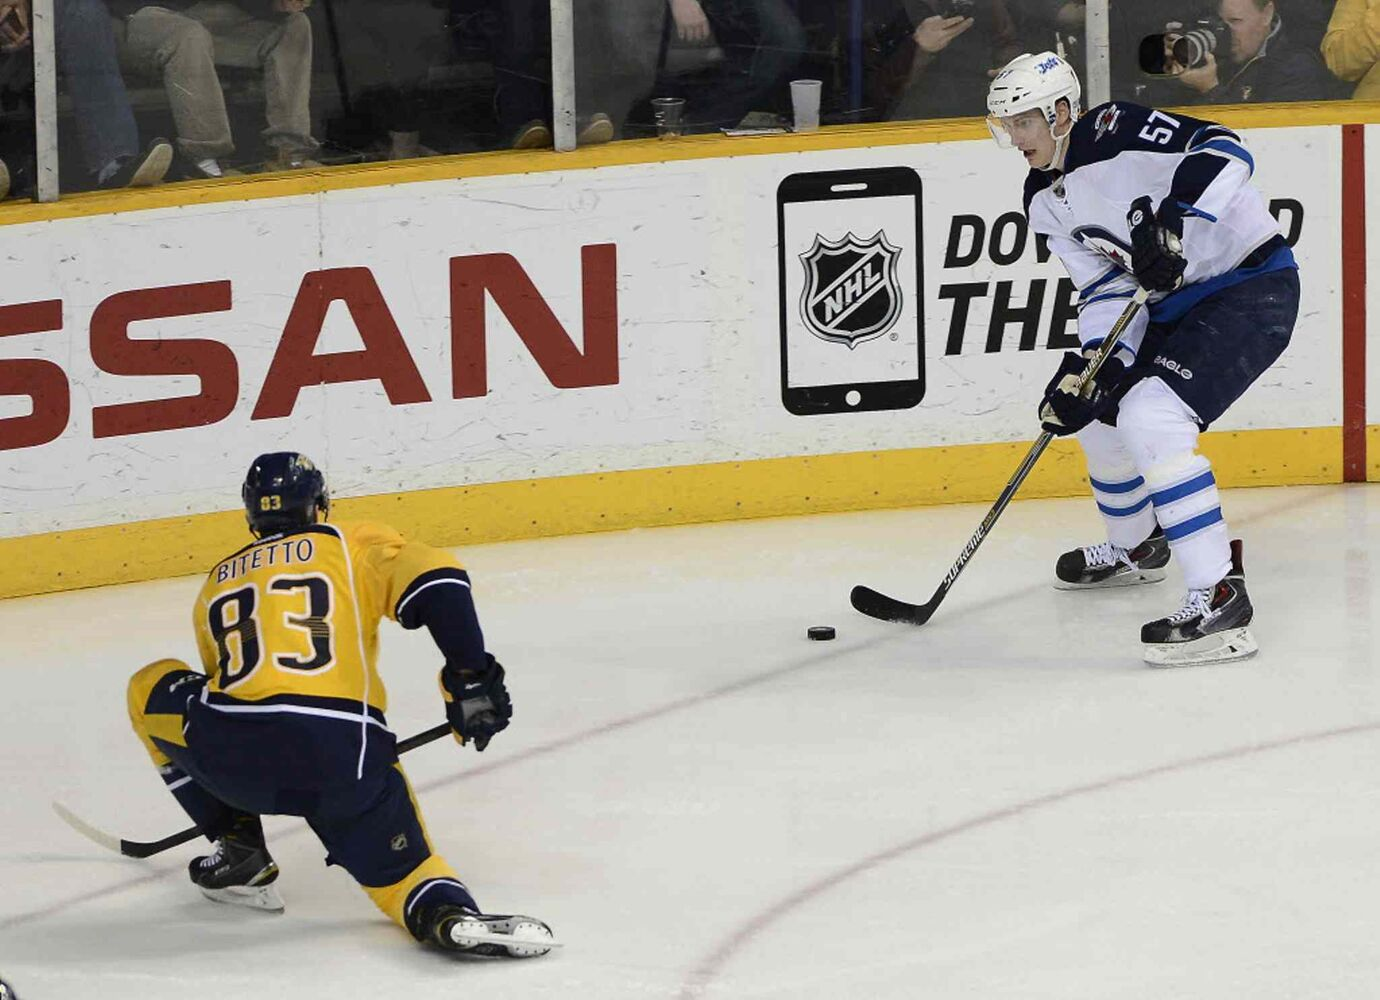 Winnipeg Jets defenceman Tyler Myers (57) looks to pass against Nashville Predators defenceman Anthony Bitetto (83) in the third period. (Mark Zaleski / The Associated Press)